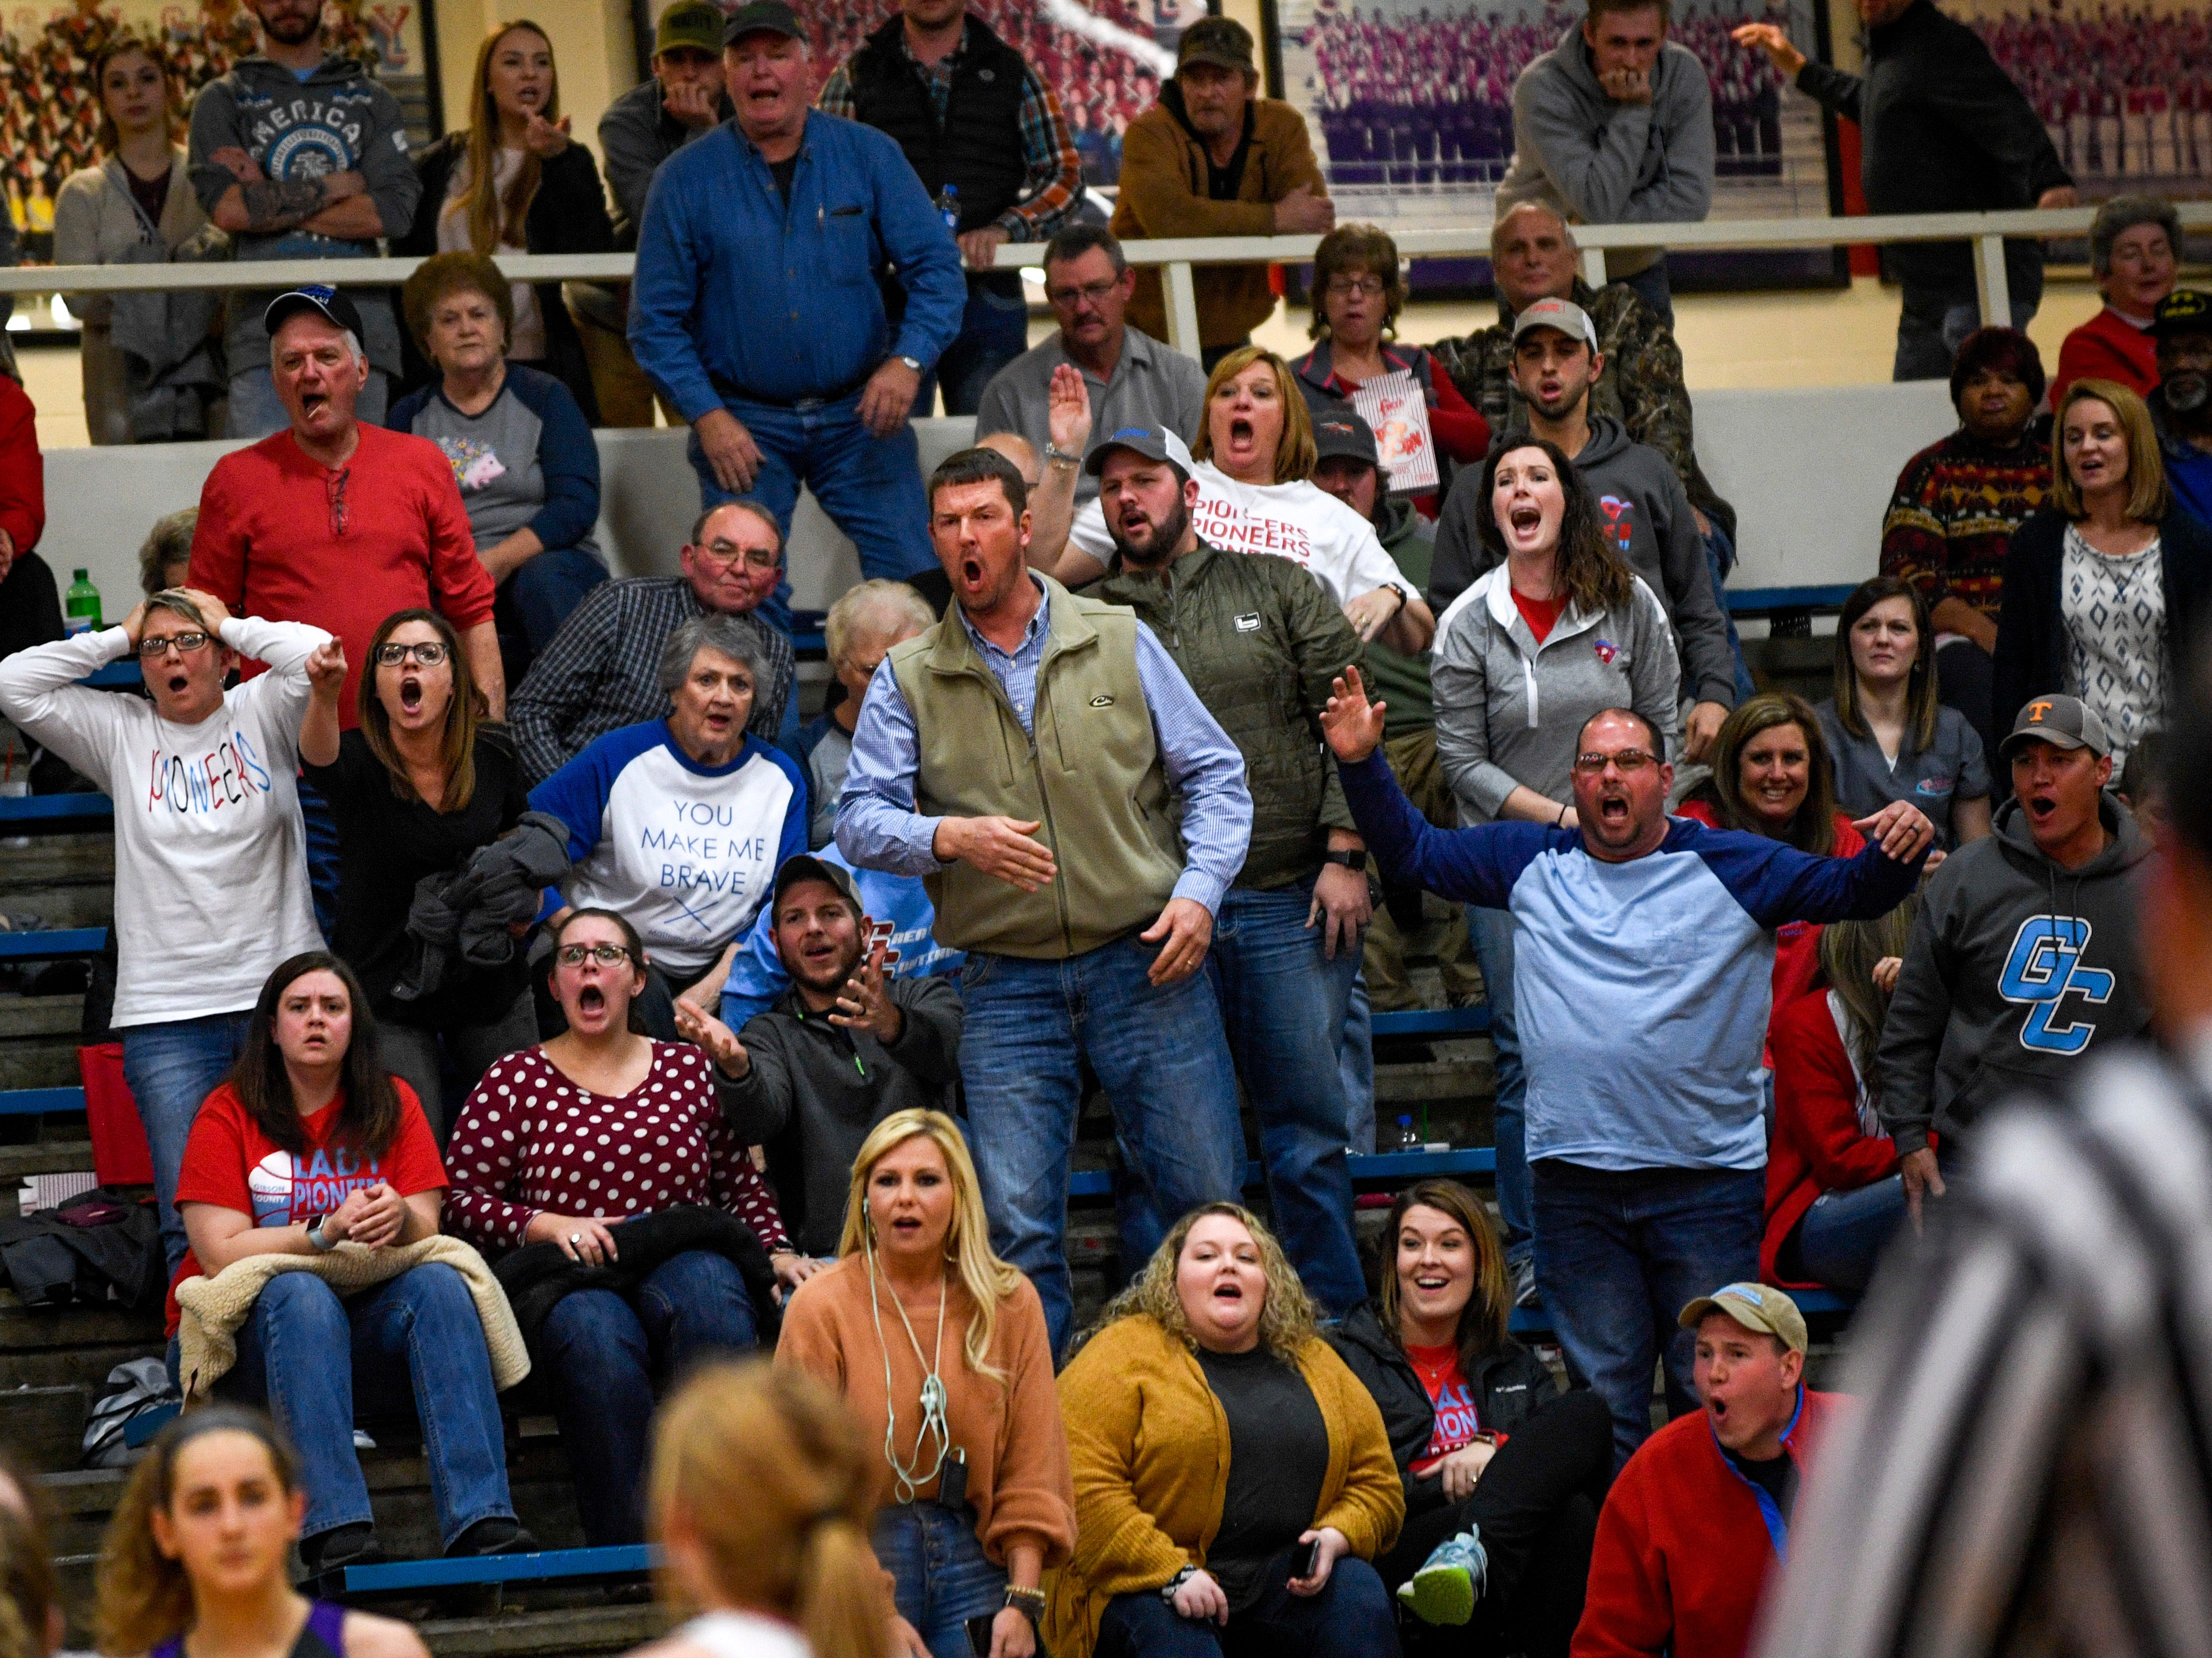 Gibson County fans yell and declare their disappointment in a referee's call in a TSSAA girls basketball game between Gibson County and Trinity Christian Academy at Gibson County High School in Dyer, Tenn., on Friday, Jan. 11, 2019.